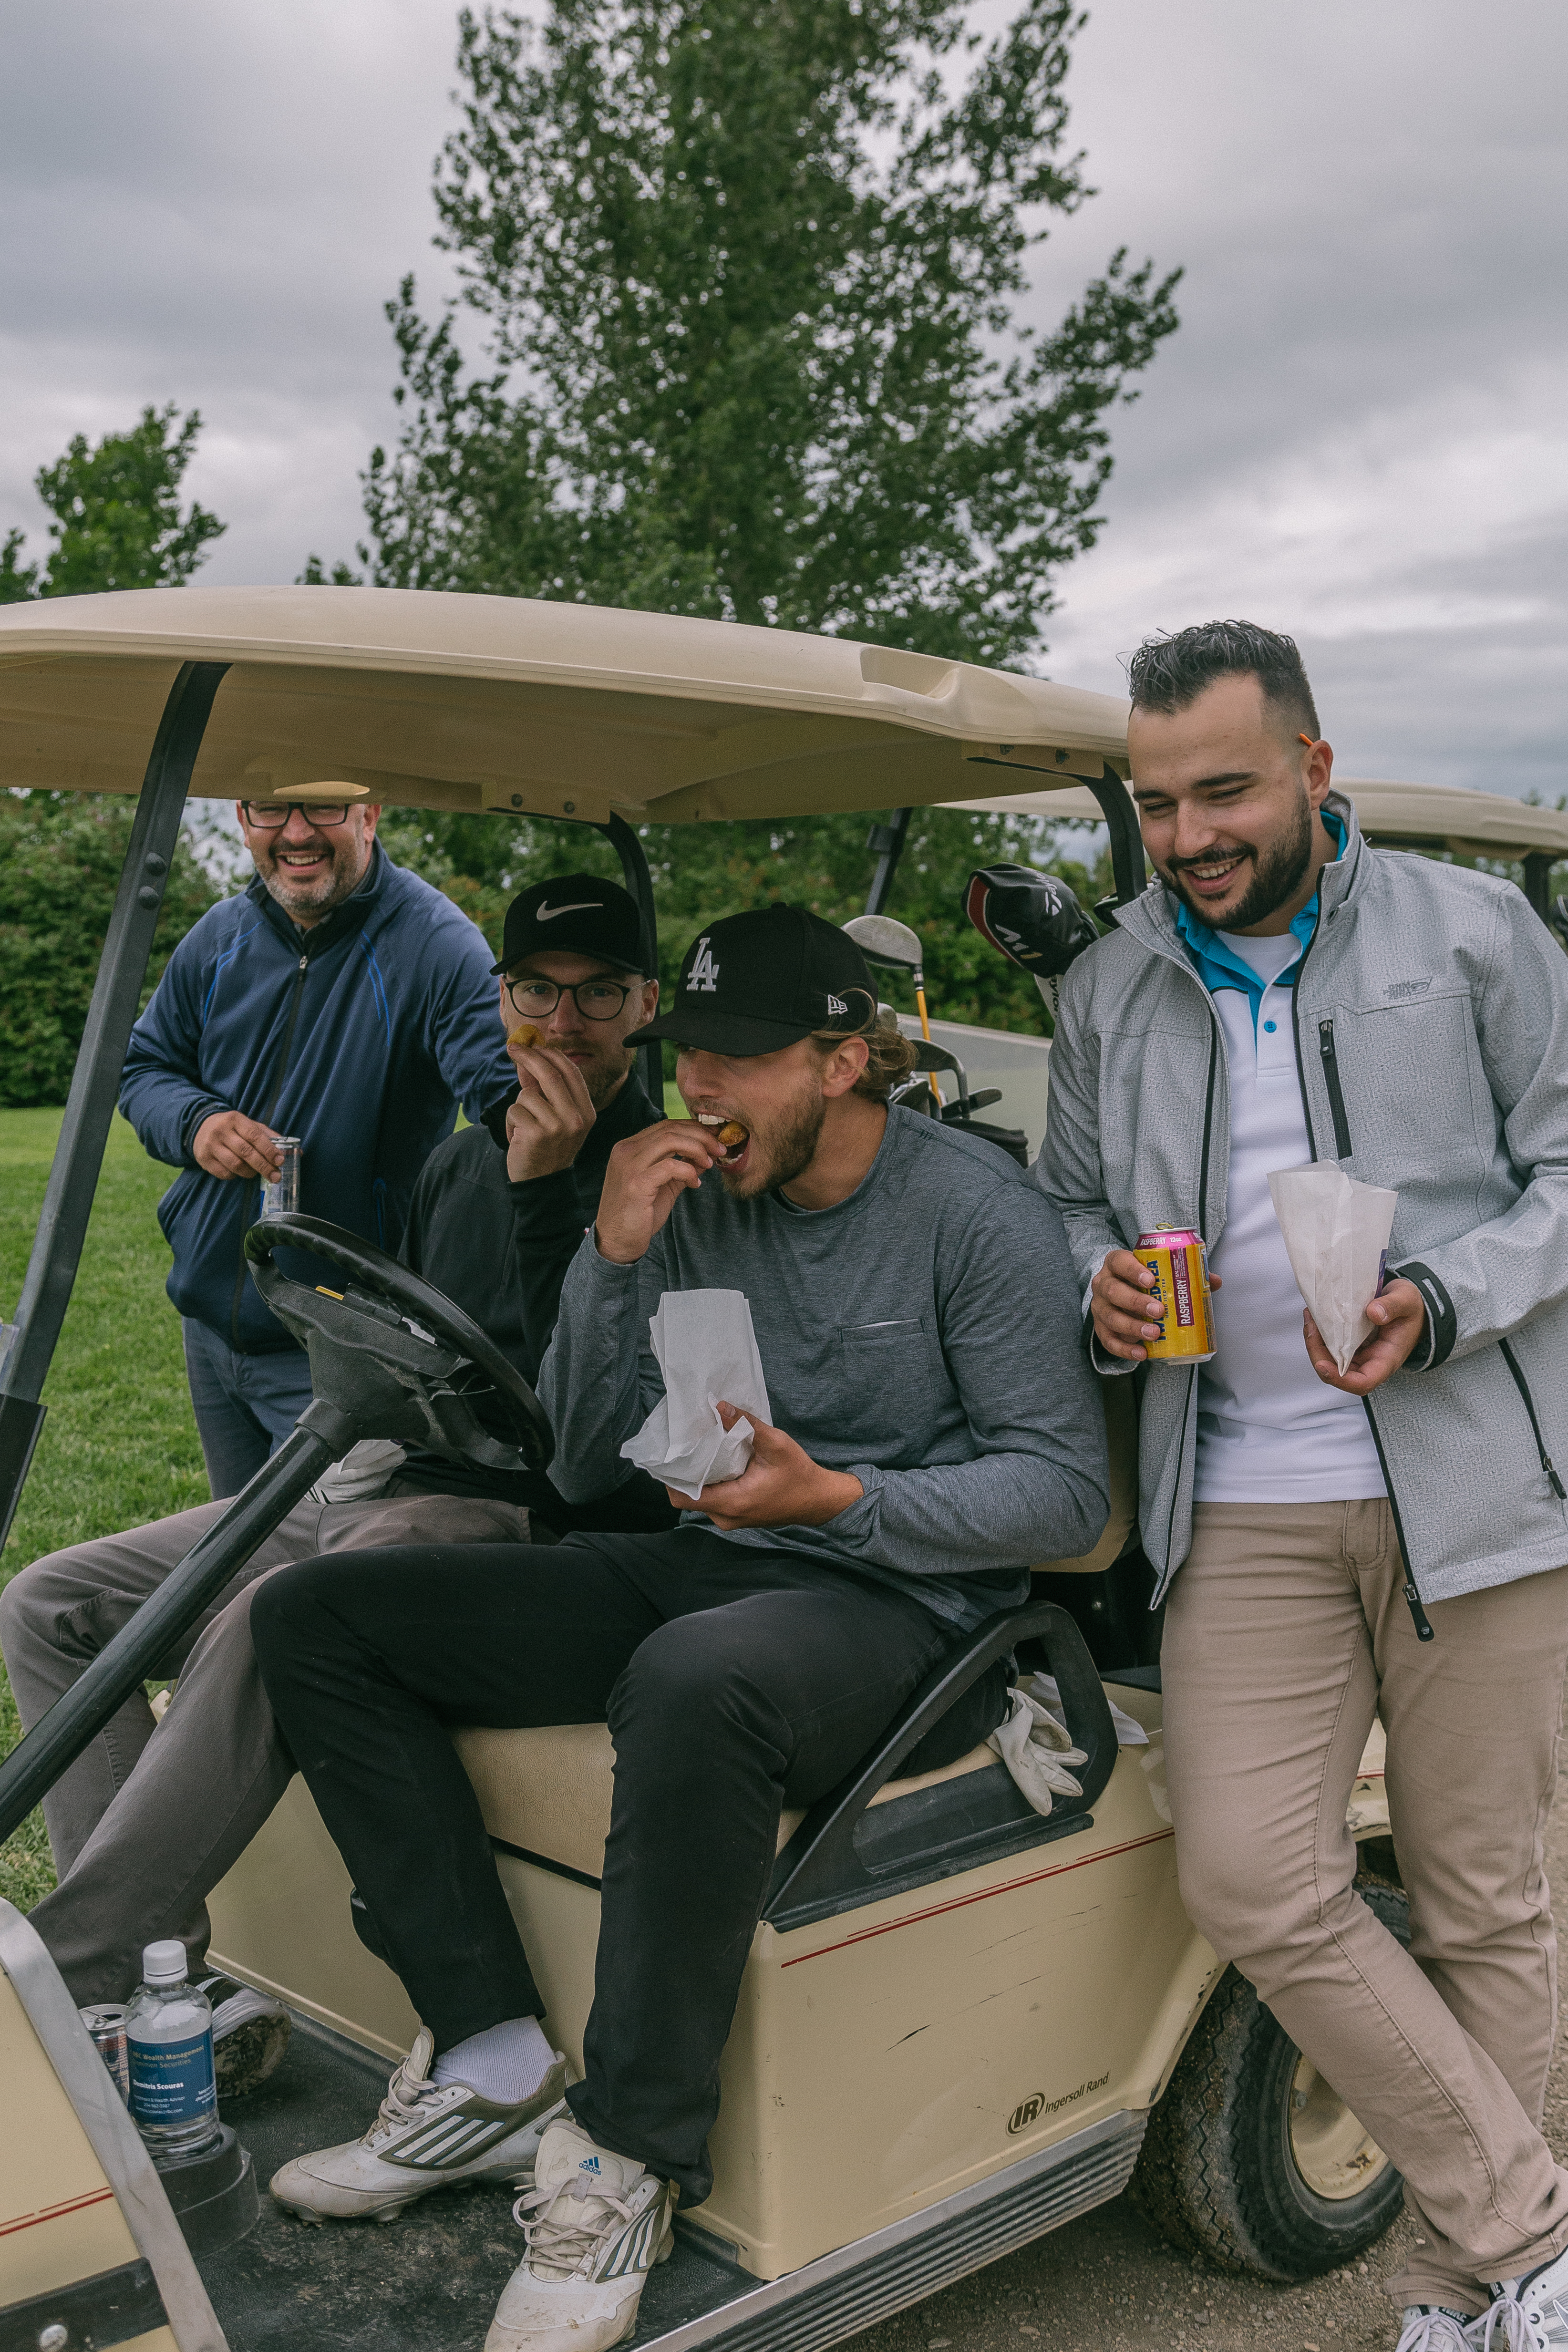 The 5th Annual Peter Scouras Memorial Golf Classic presented by ALLIED PAYMENTS gallery image #10